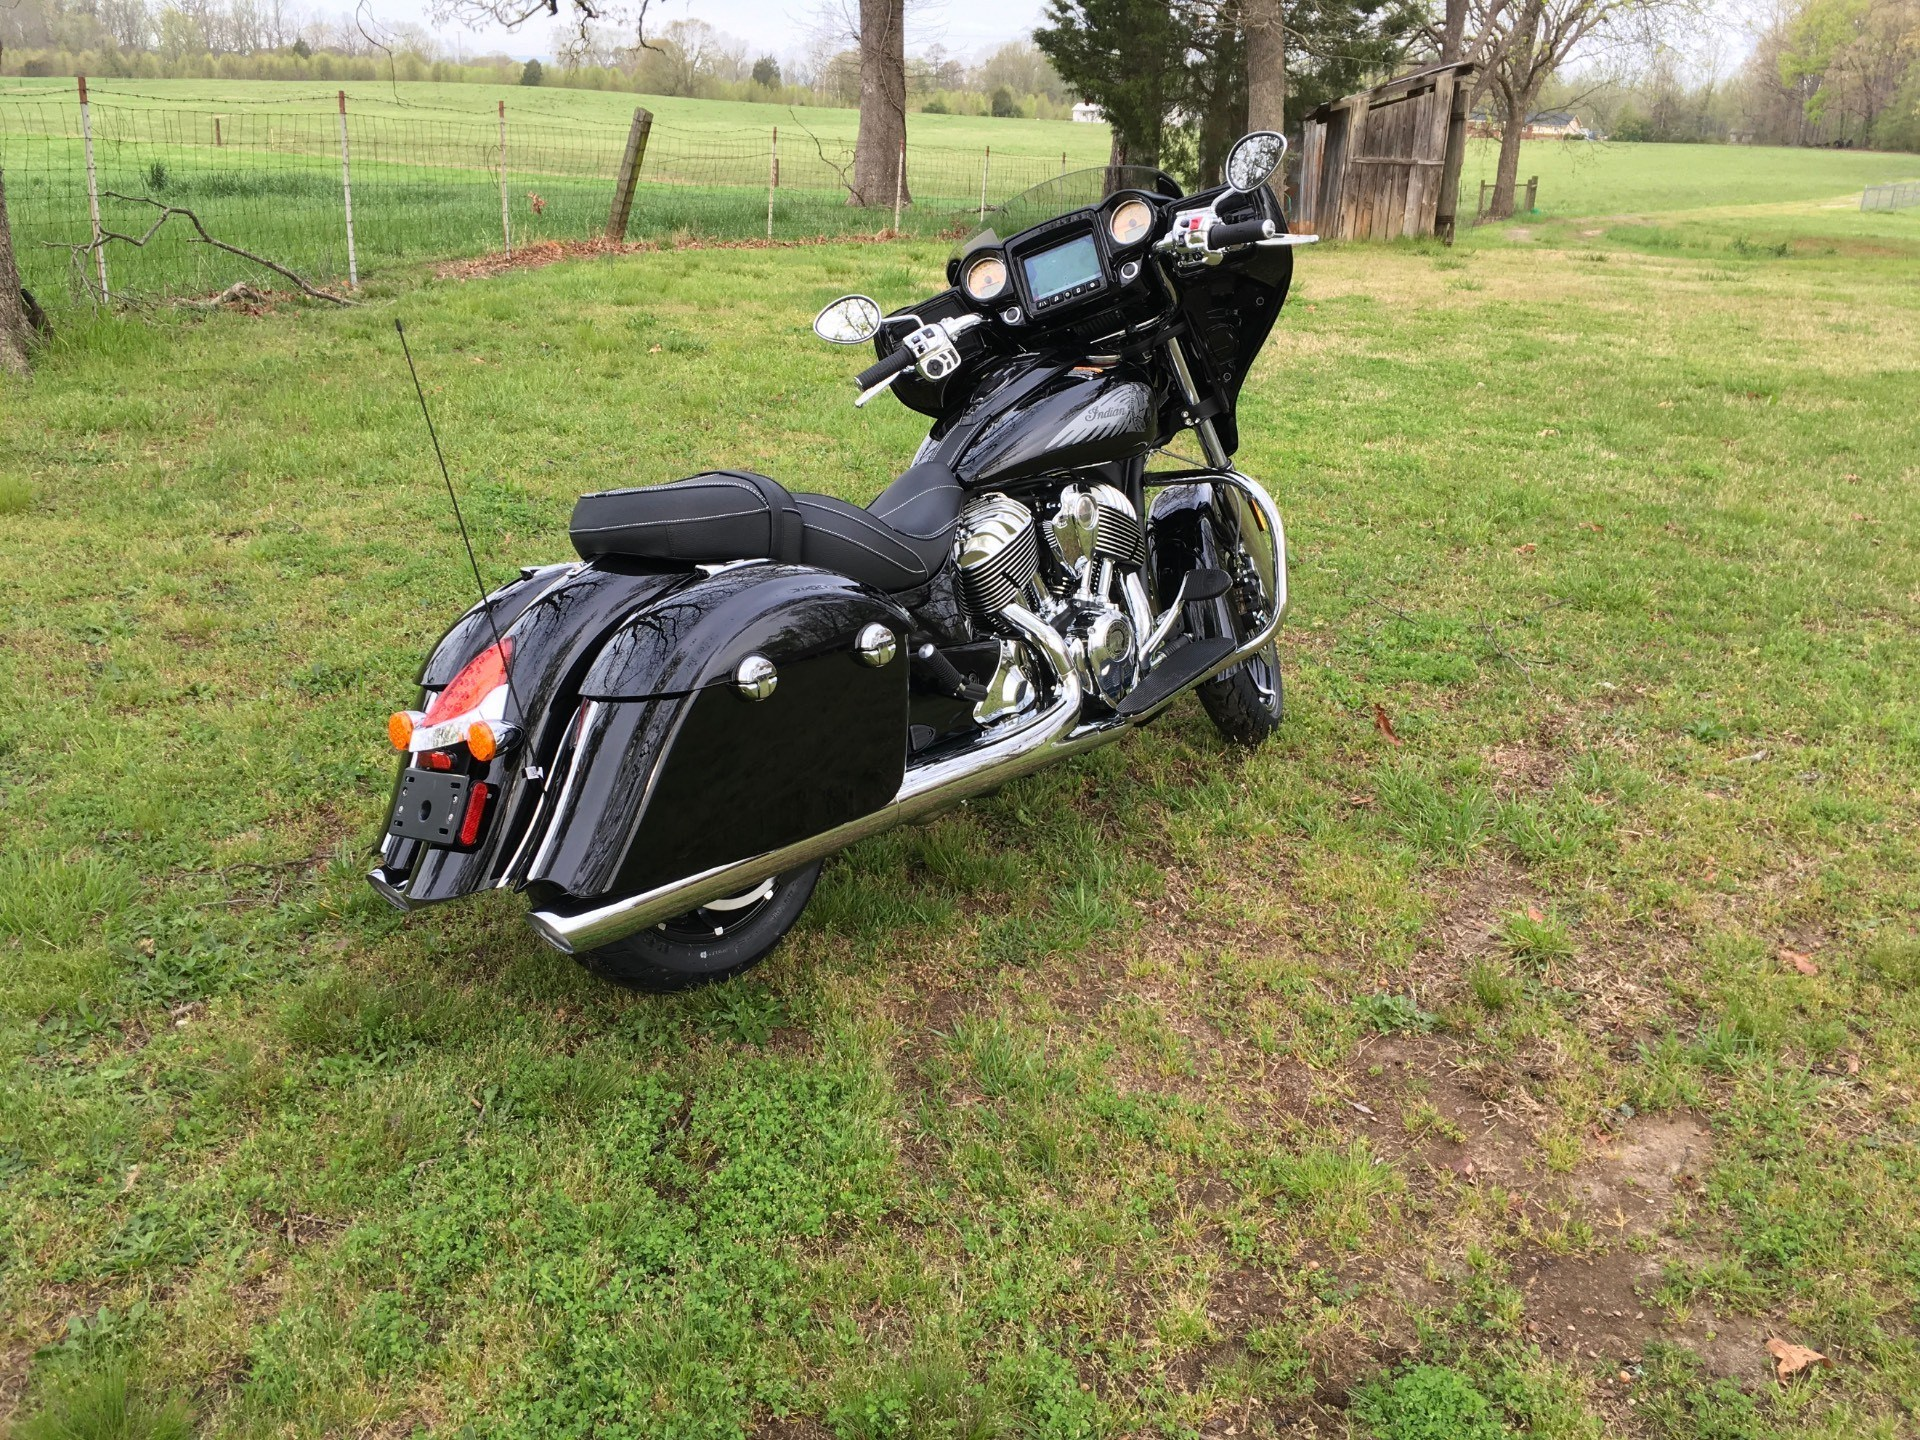 2017 Indian Chieftain Limited 5